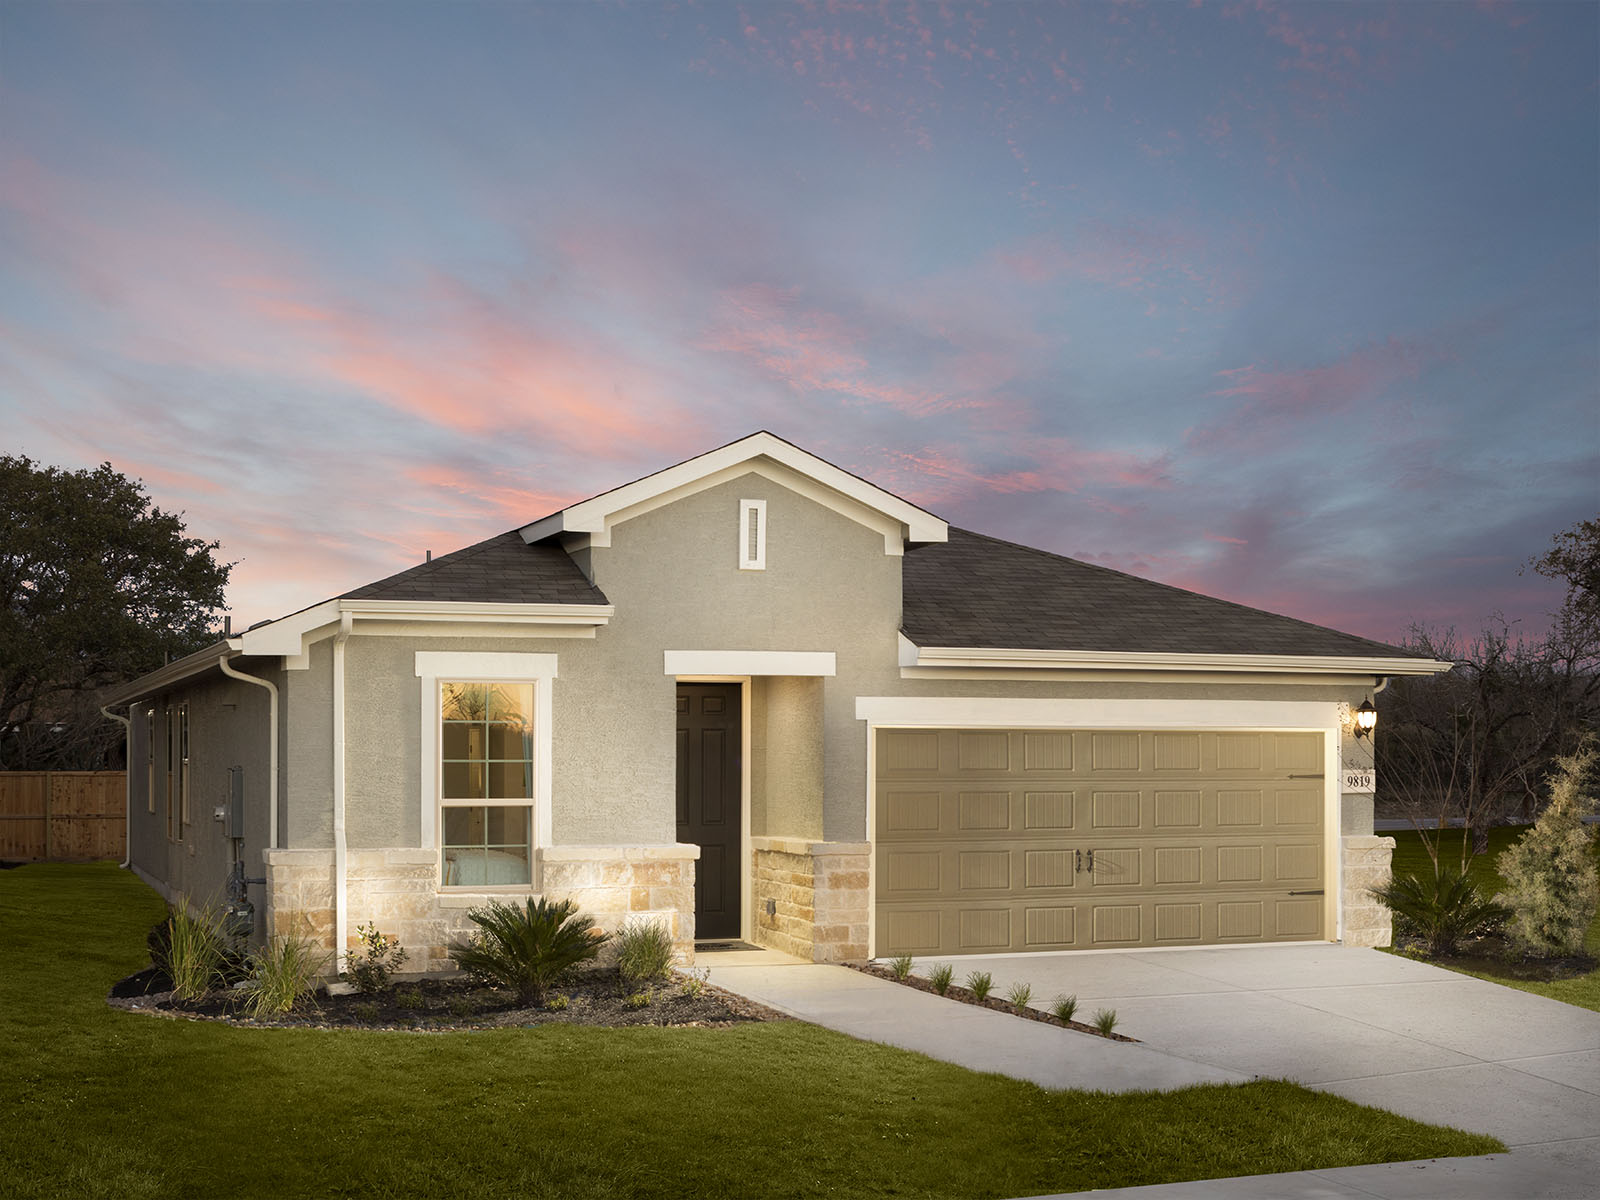 hight resolution of meritage homes for sale in san antonio texas wiring a house cost san antonio tx